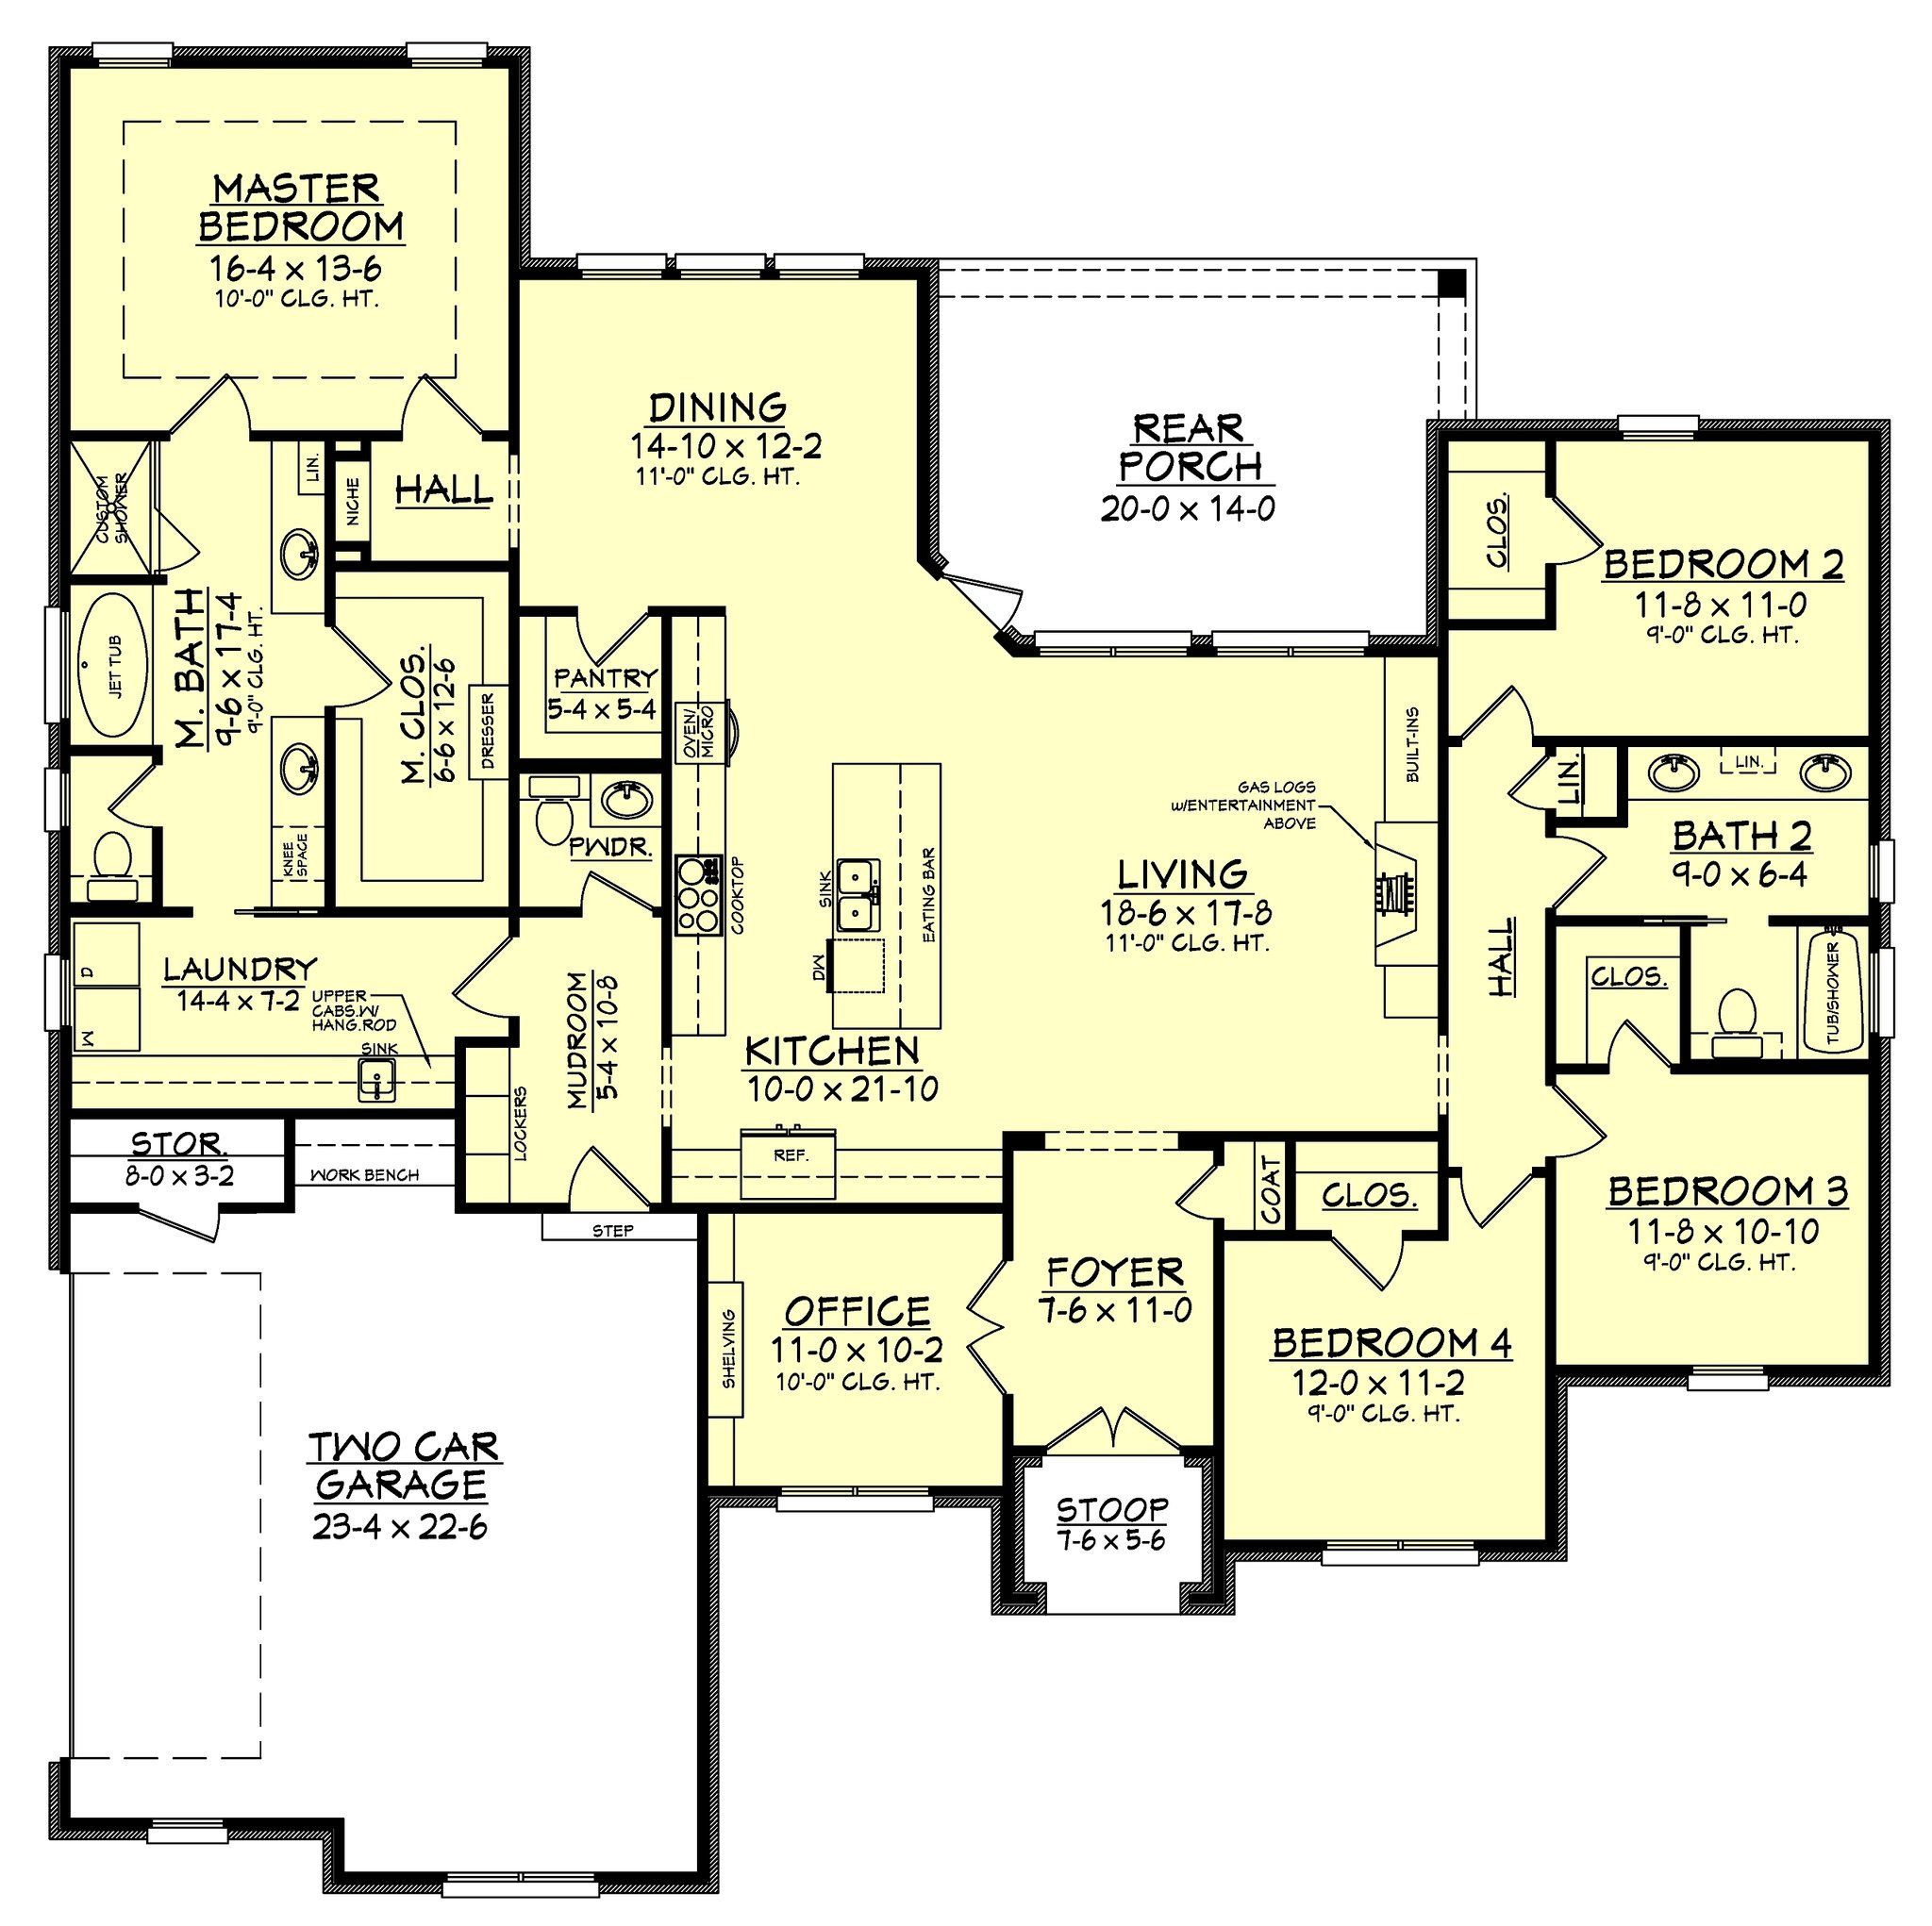 remarkable floor plan a 2 bedroom house house floor plan design The wonderful 4 bedroom 2.5 bath home design features high ceilings, open  layout and large rear porch.